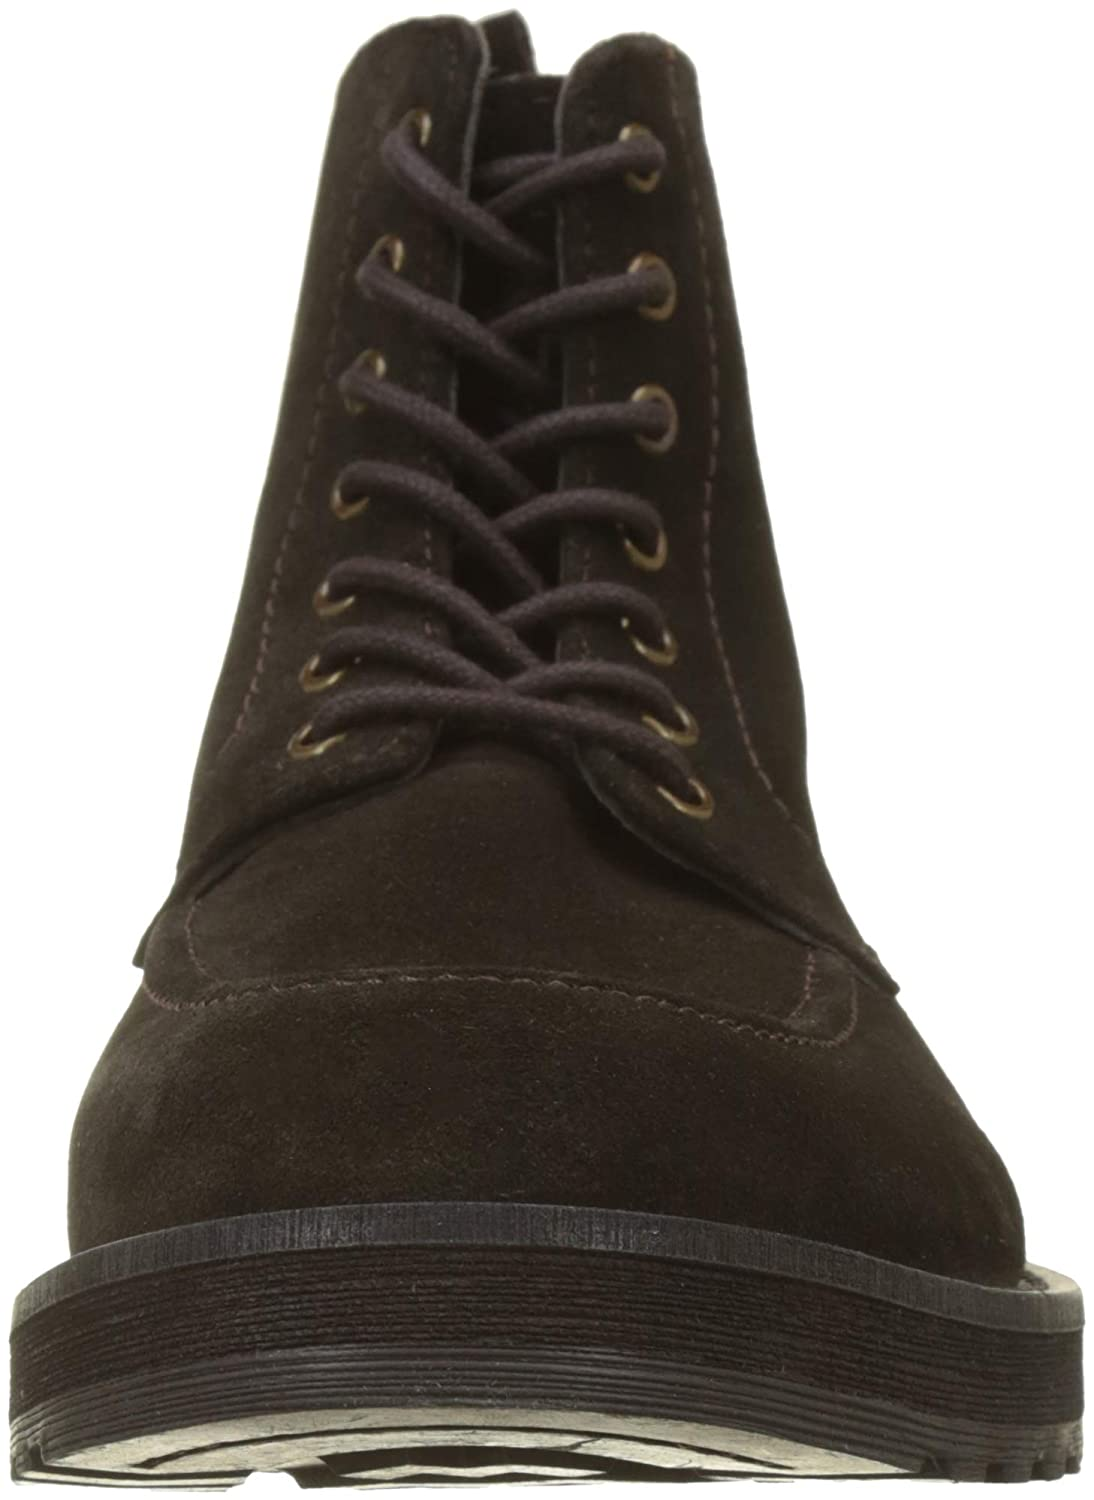 Bottines amp; Souples Amazon By Bottes Sud Homme Pldm Palladium Pario xnAqRxYS